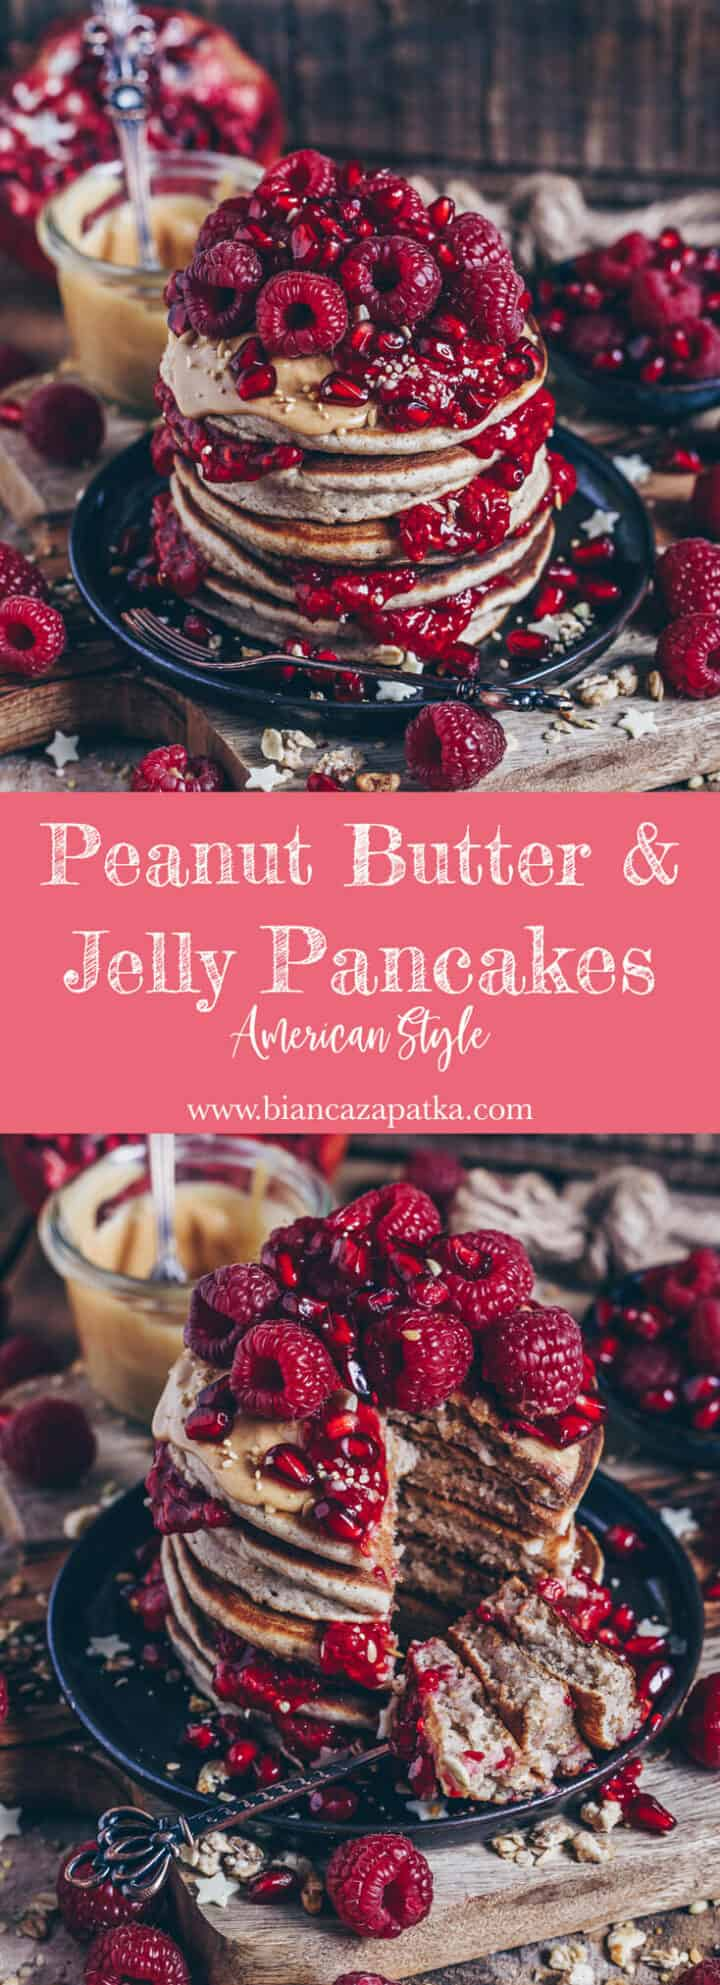 Recipe for fluffy american peanut butter jelly pancakes with coconut taste and vegan option - healthy, delicious, easy and quick to make!